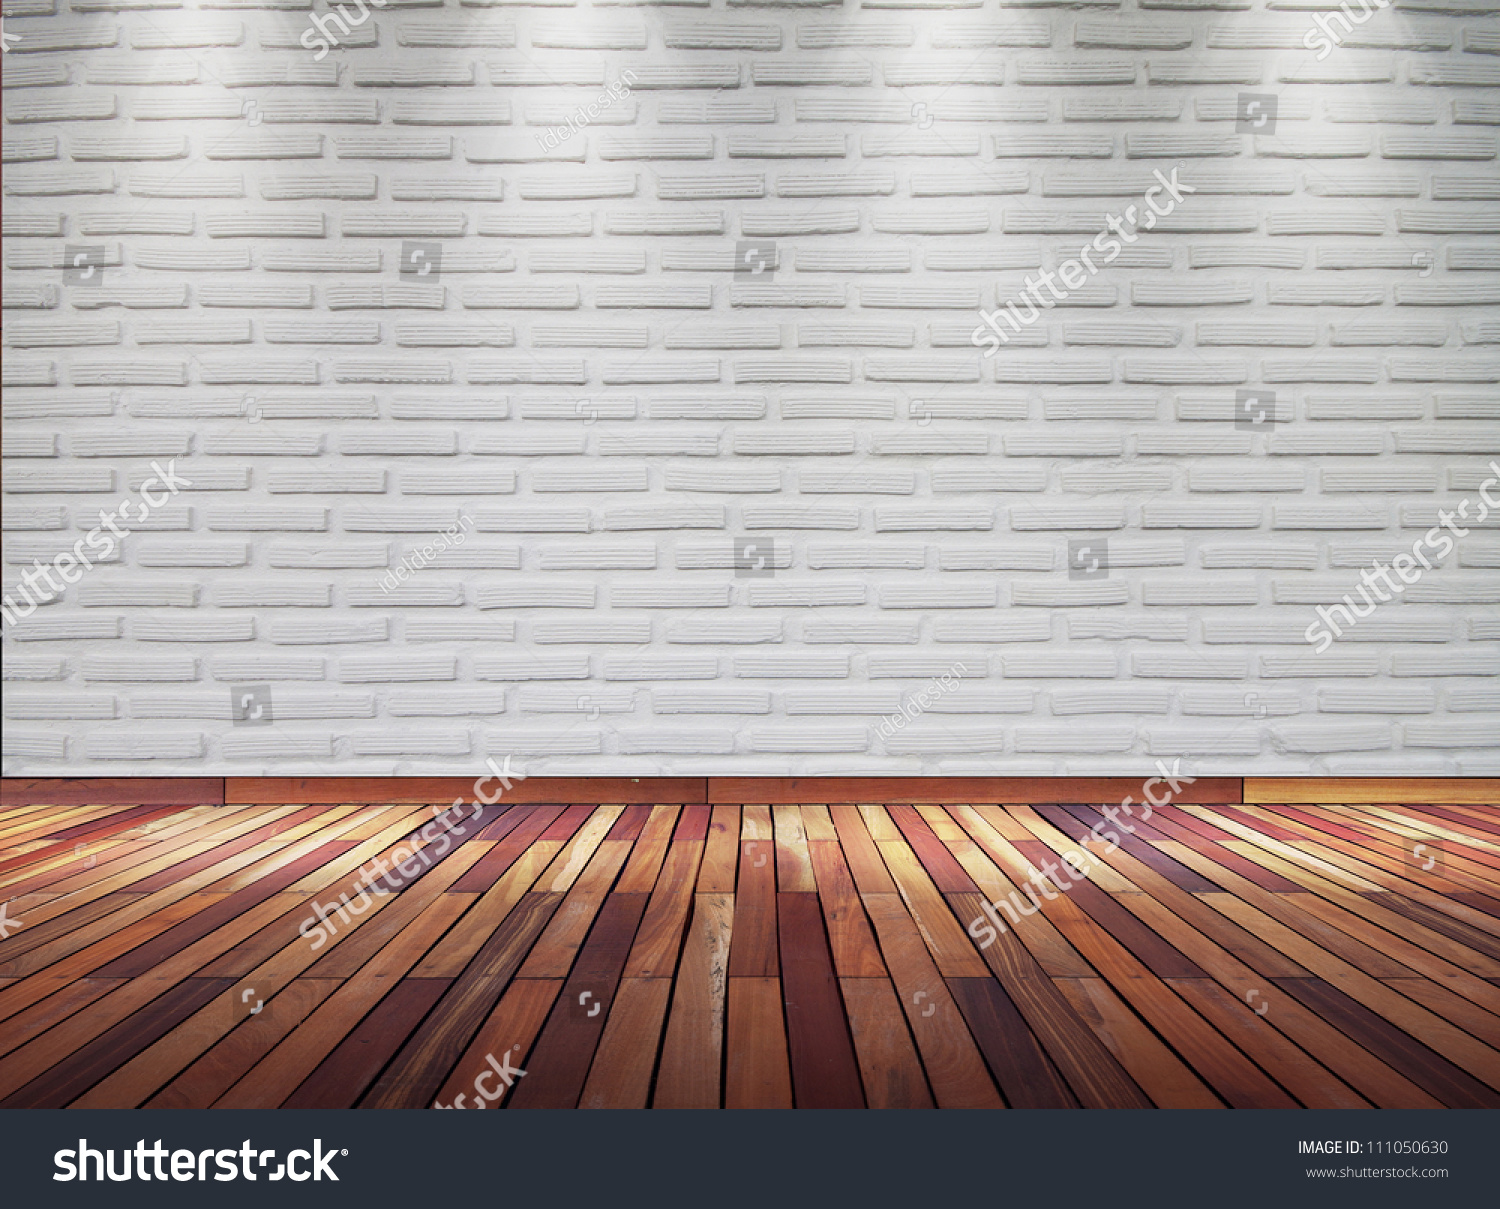 White Brick Wall Lights : Empty Old White Brick Wall With Spot Lights And Wooden Floor Stock Photo 111050630 : Shutterstock